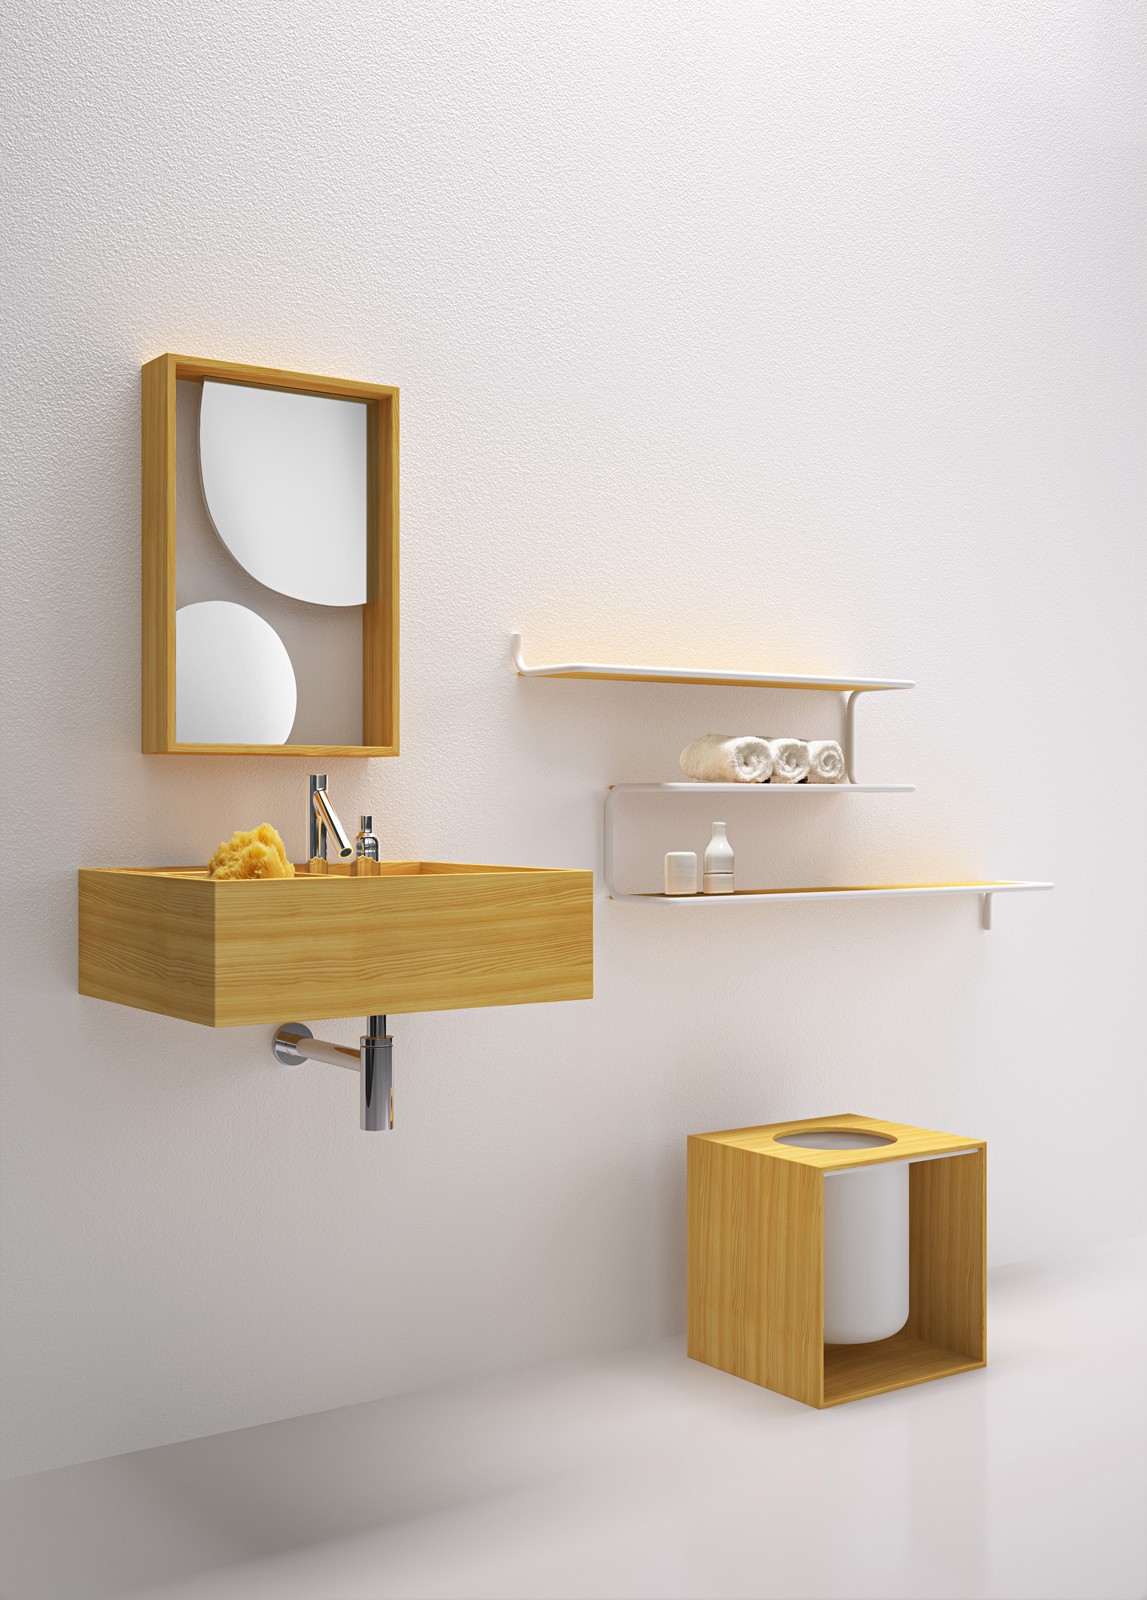 Bathroom fixtures by Nendo for Bisazza Bagno